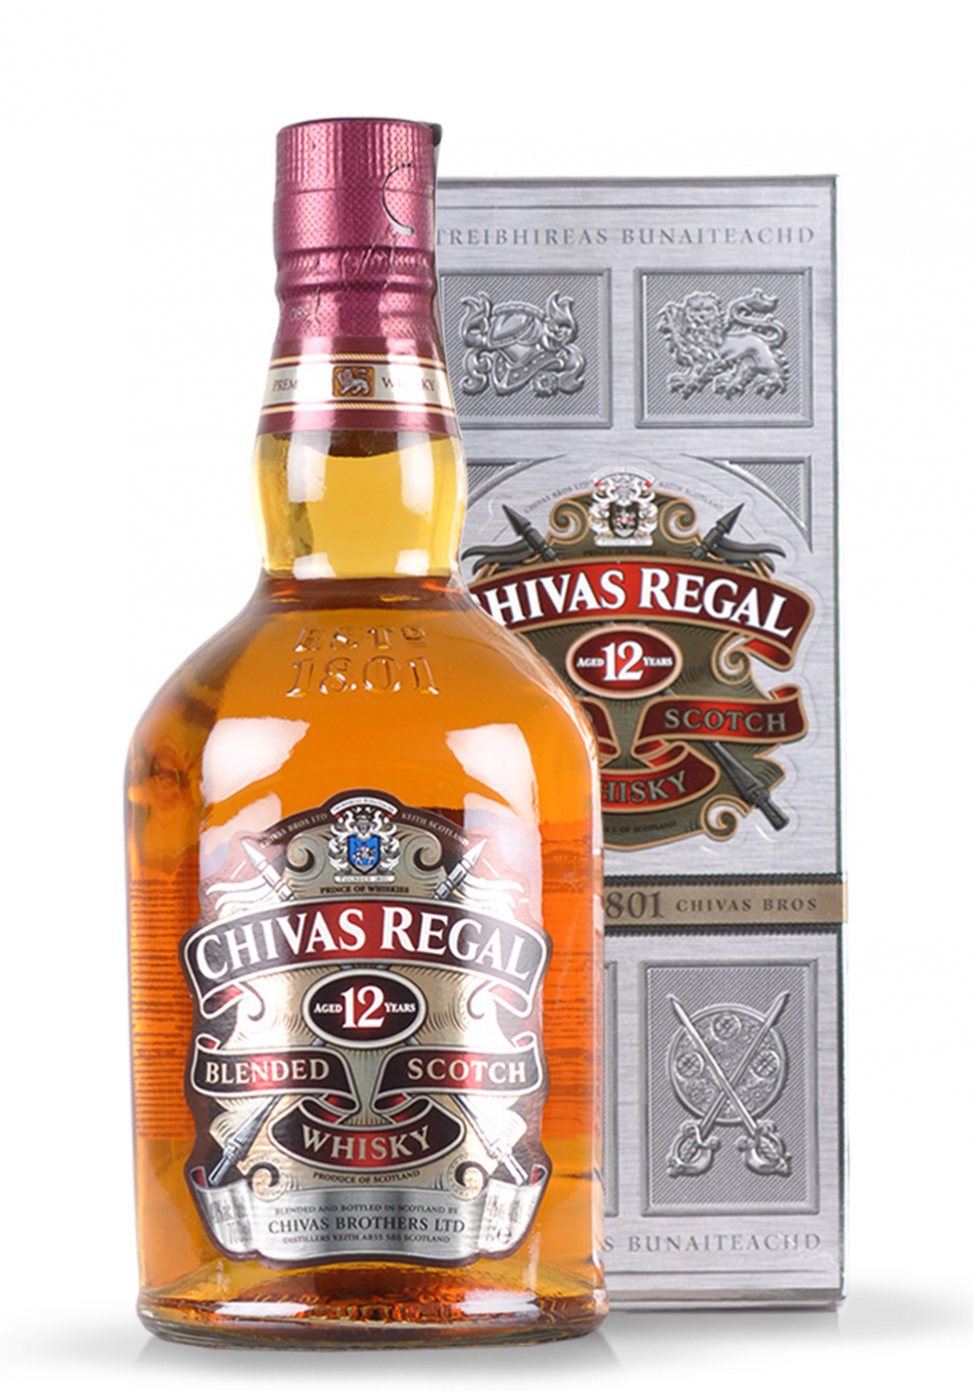 Chivas regal ltr for only in online liquor store - Chivas regal 18 1 liter price ...